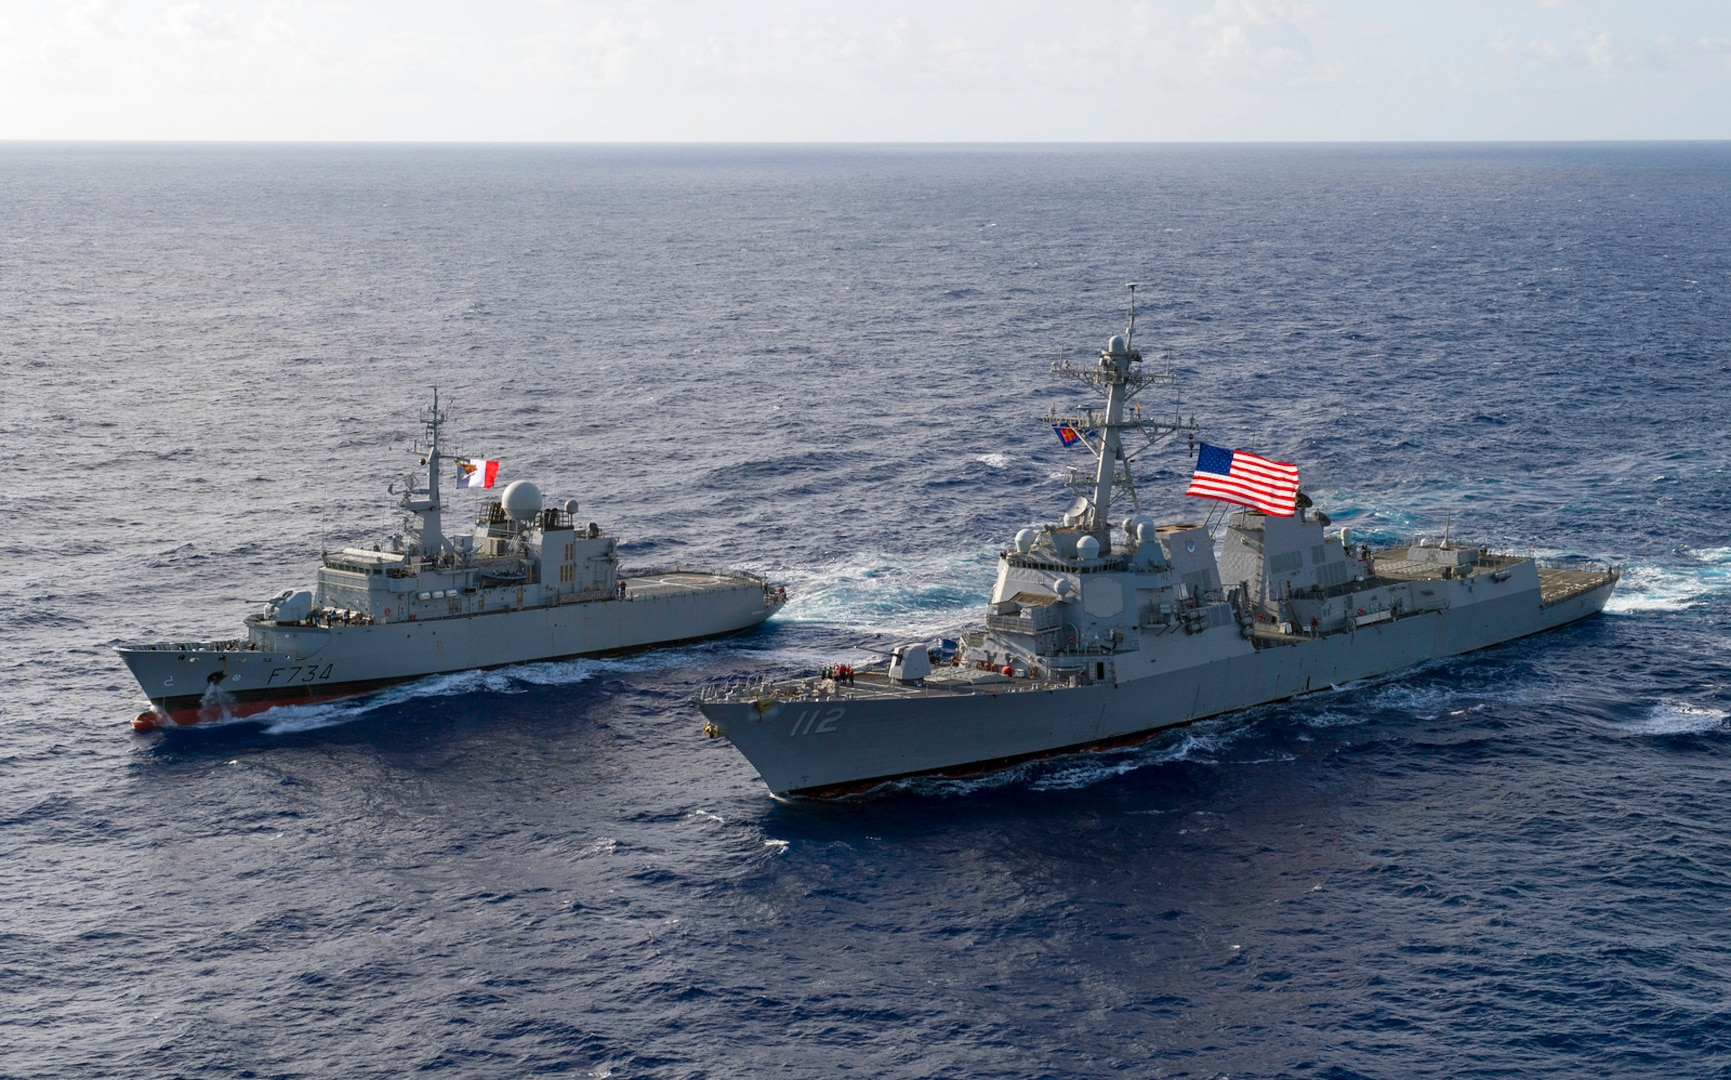 USS Michael Murphy conducts PASSEX with French Navy